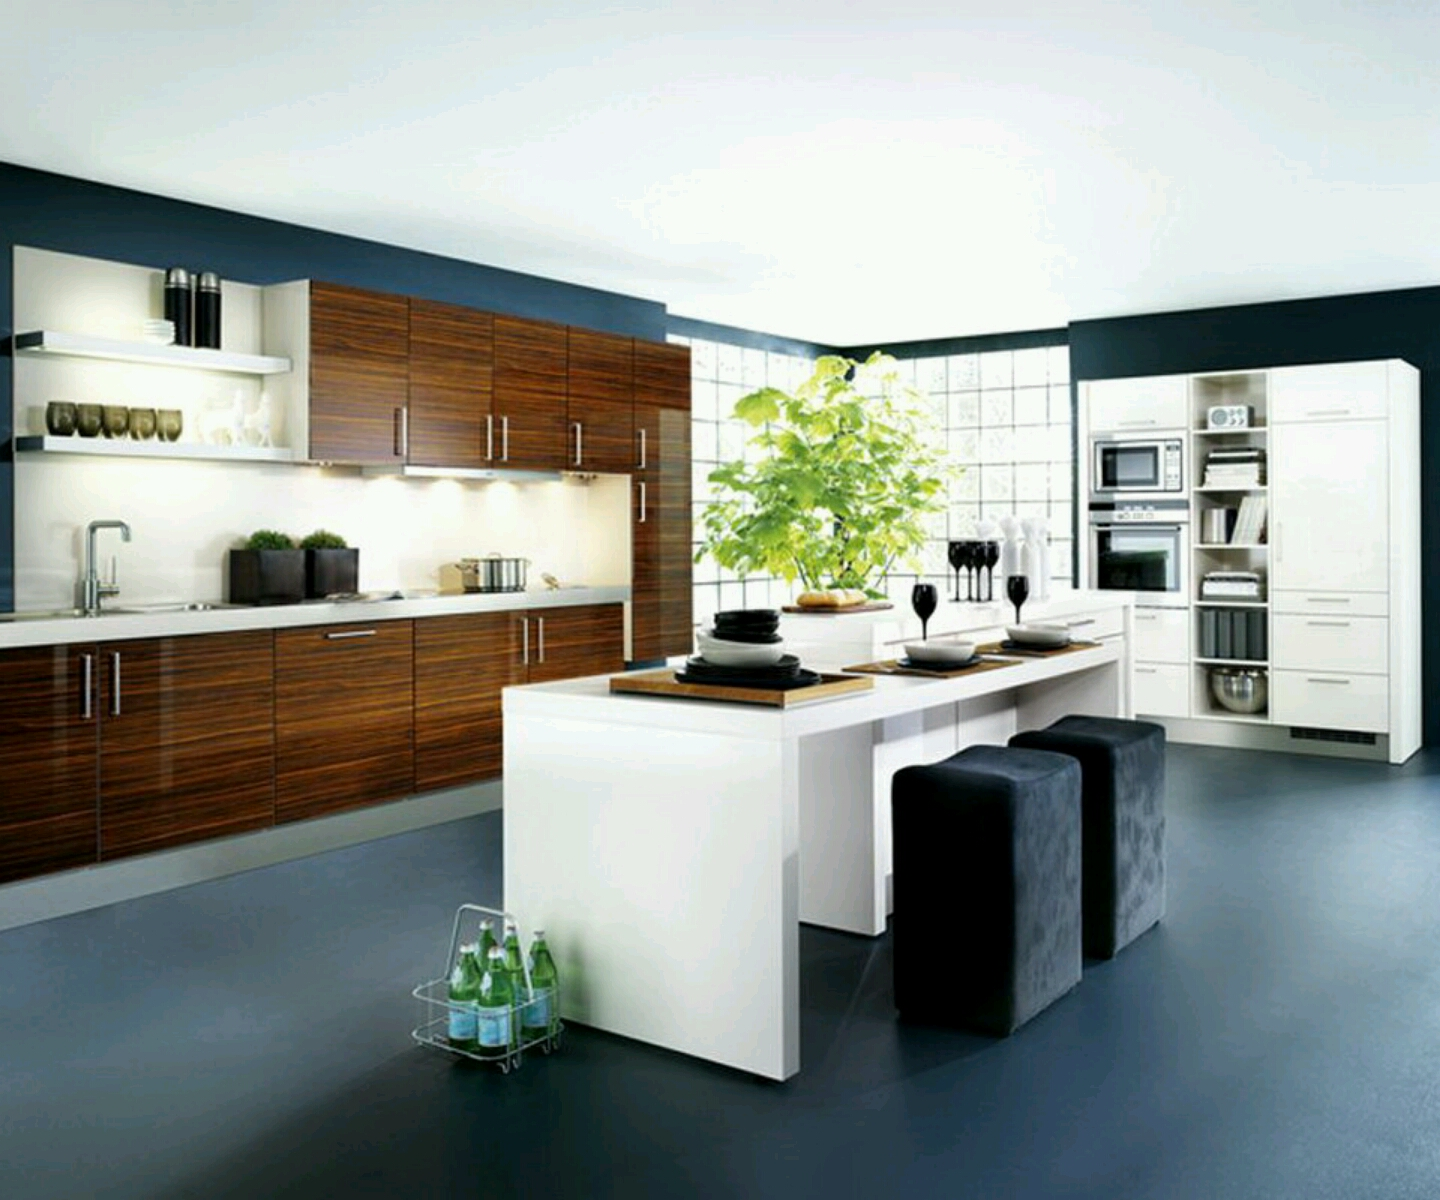 New home designs latest kitchen cabinets designs modern homes - Modern kitchen design photos ...